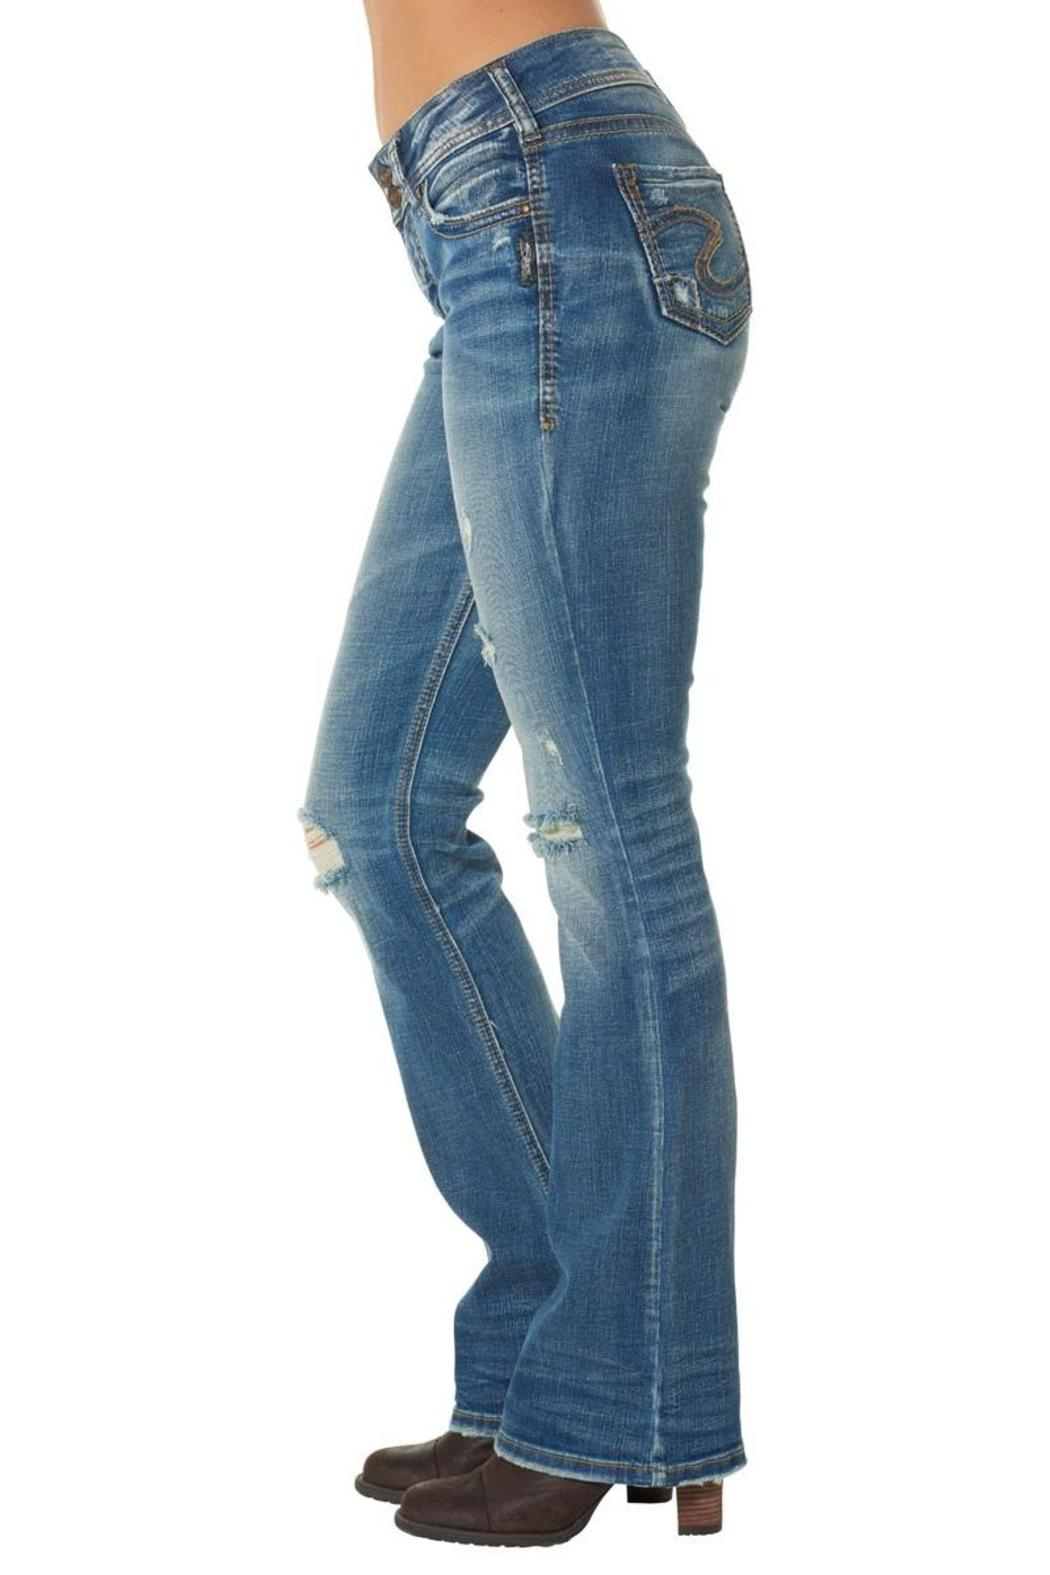 Silver Jeans Co. Suki Distressed Bootcut - Side Cropped Image